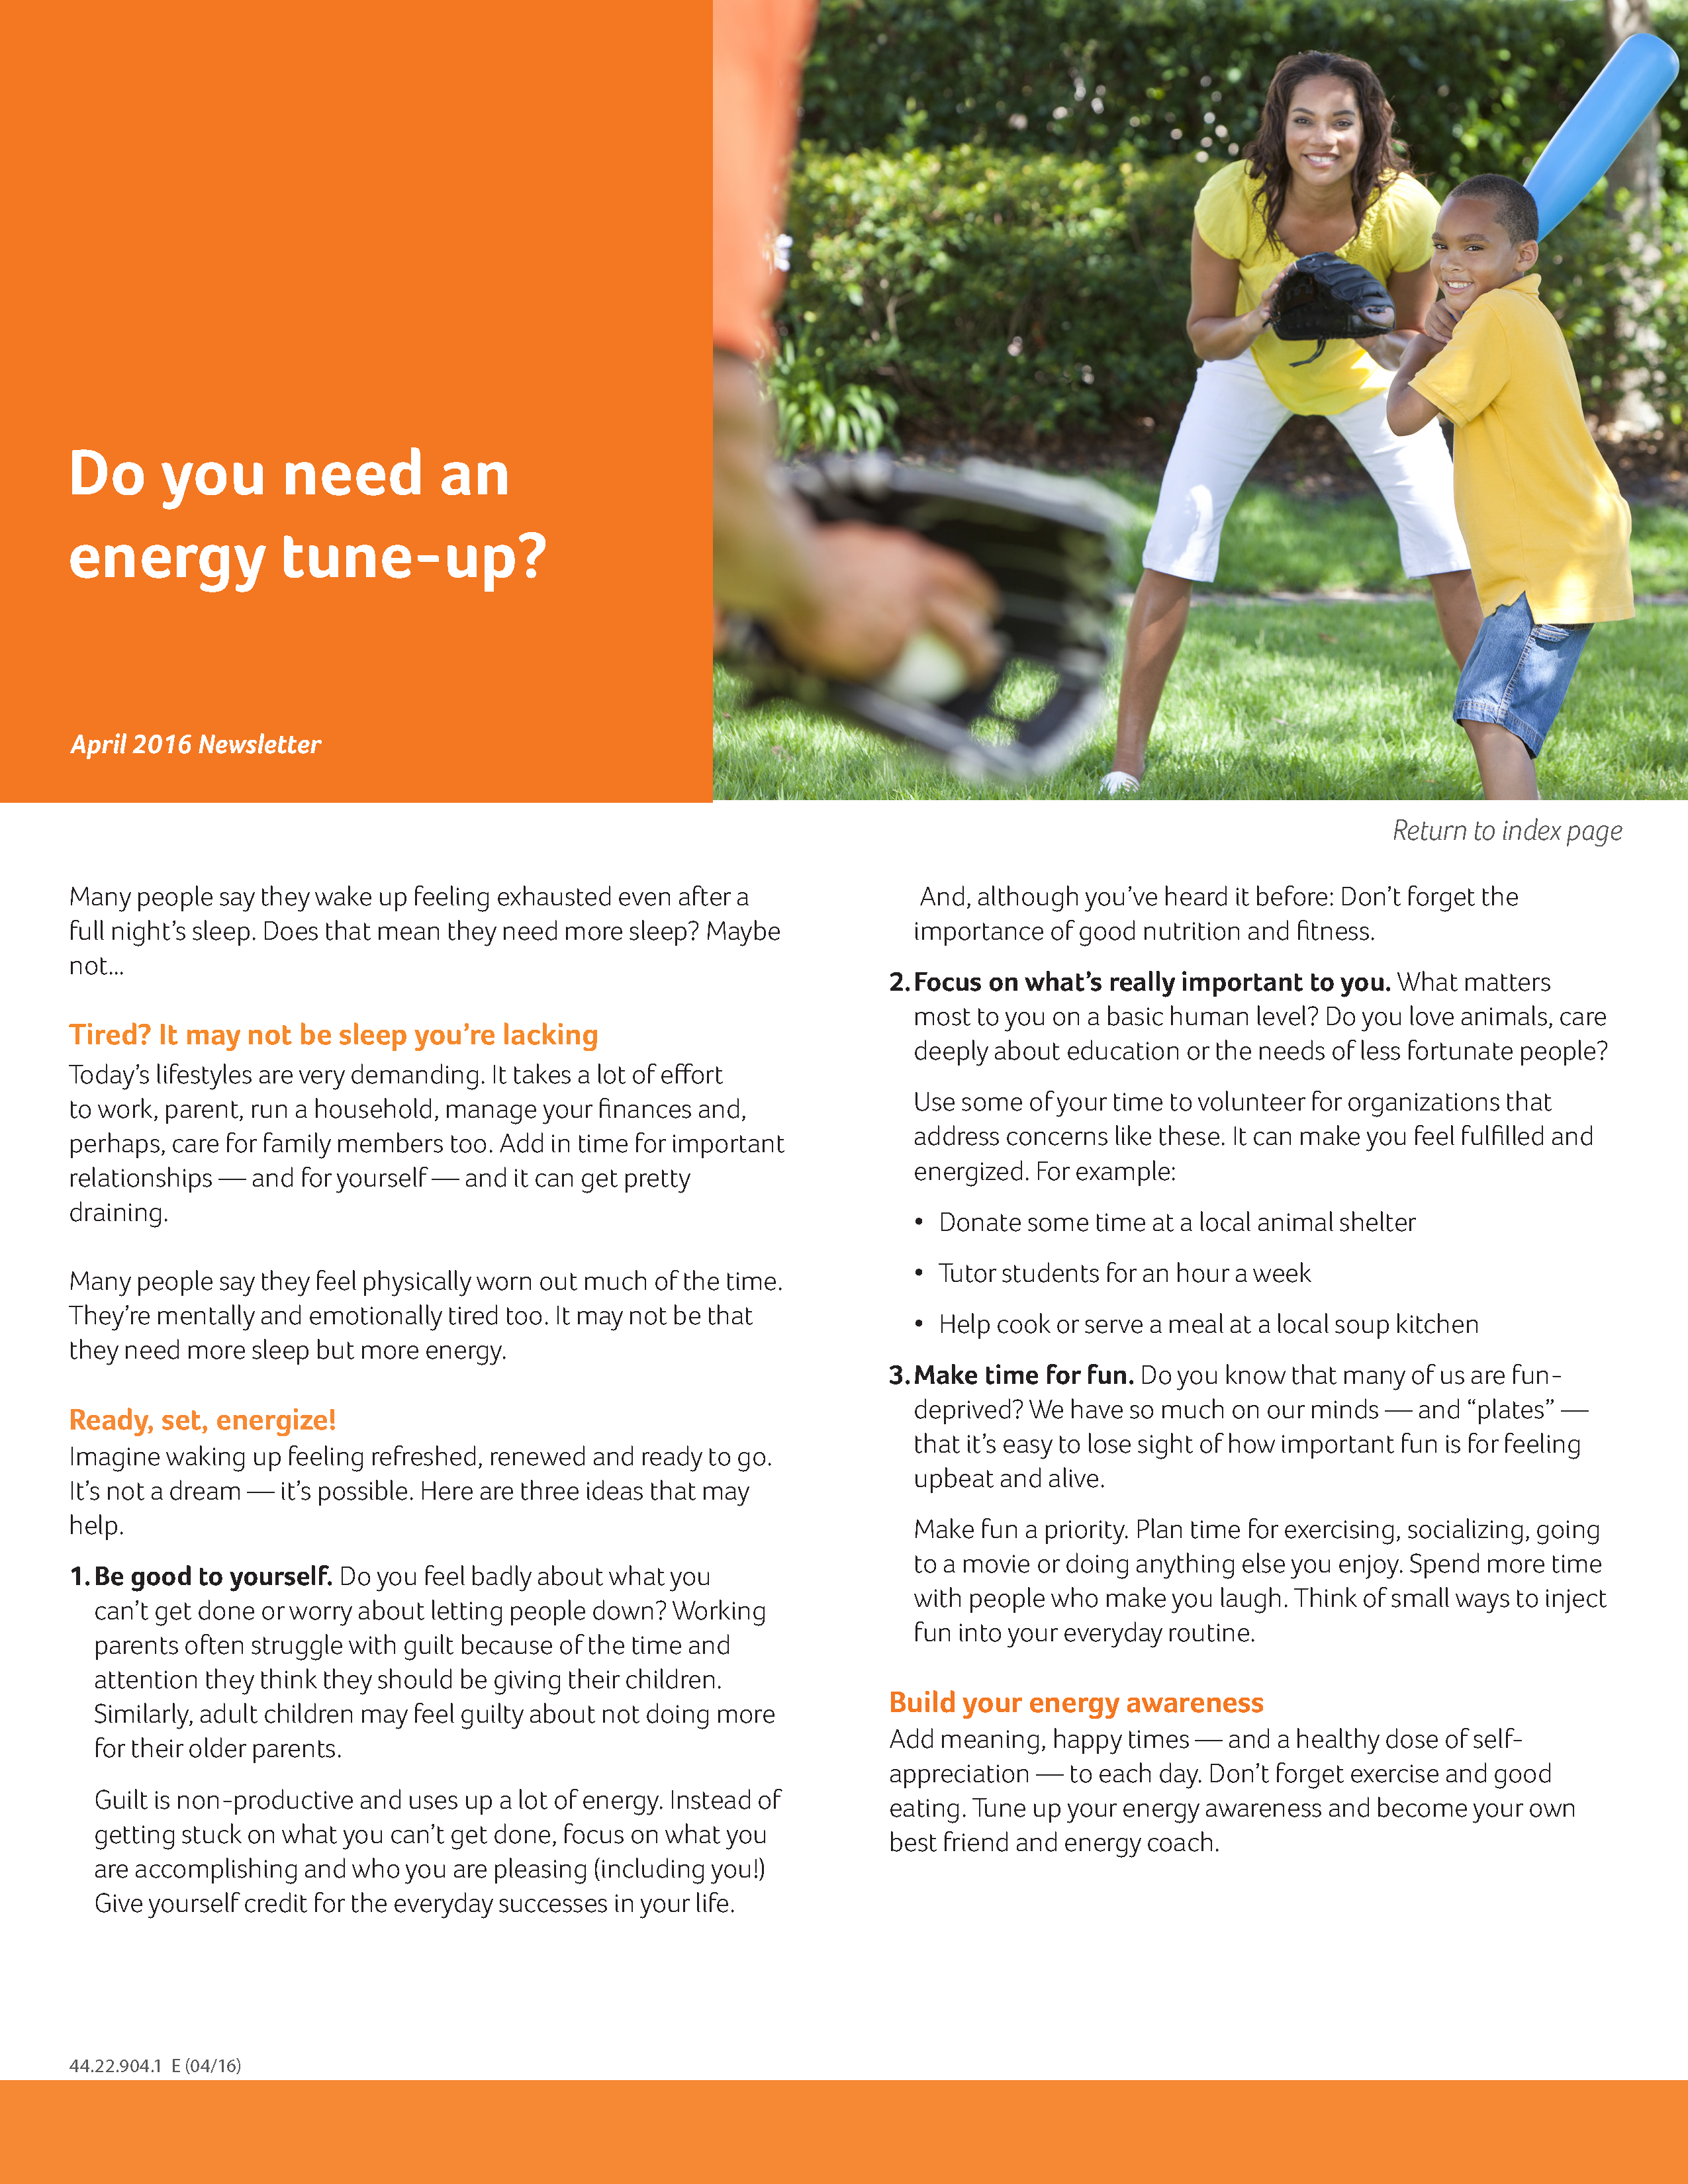 Apr16_MonthlyBulletin_Do you need an energy tune up